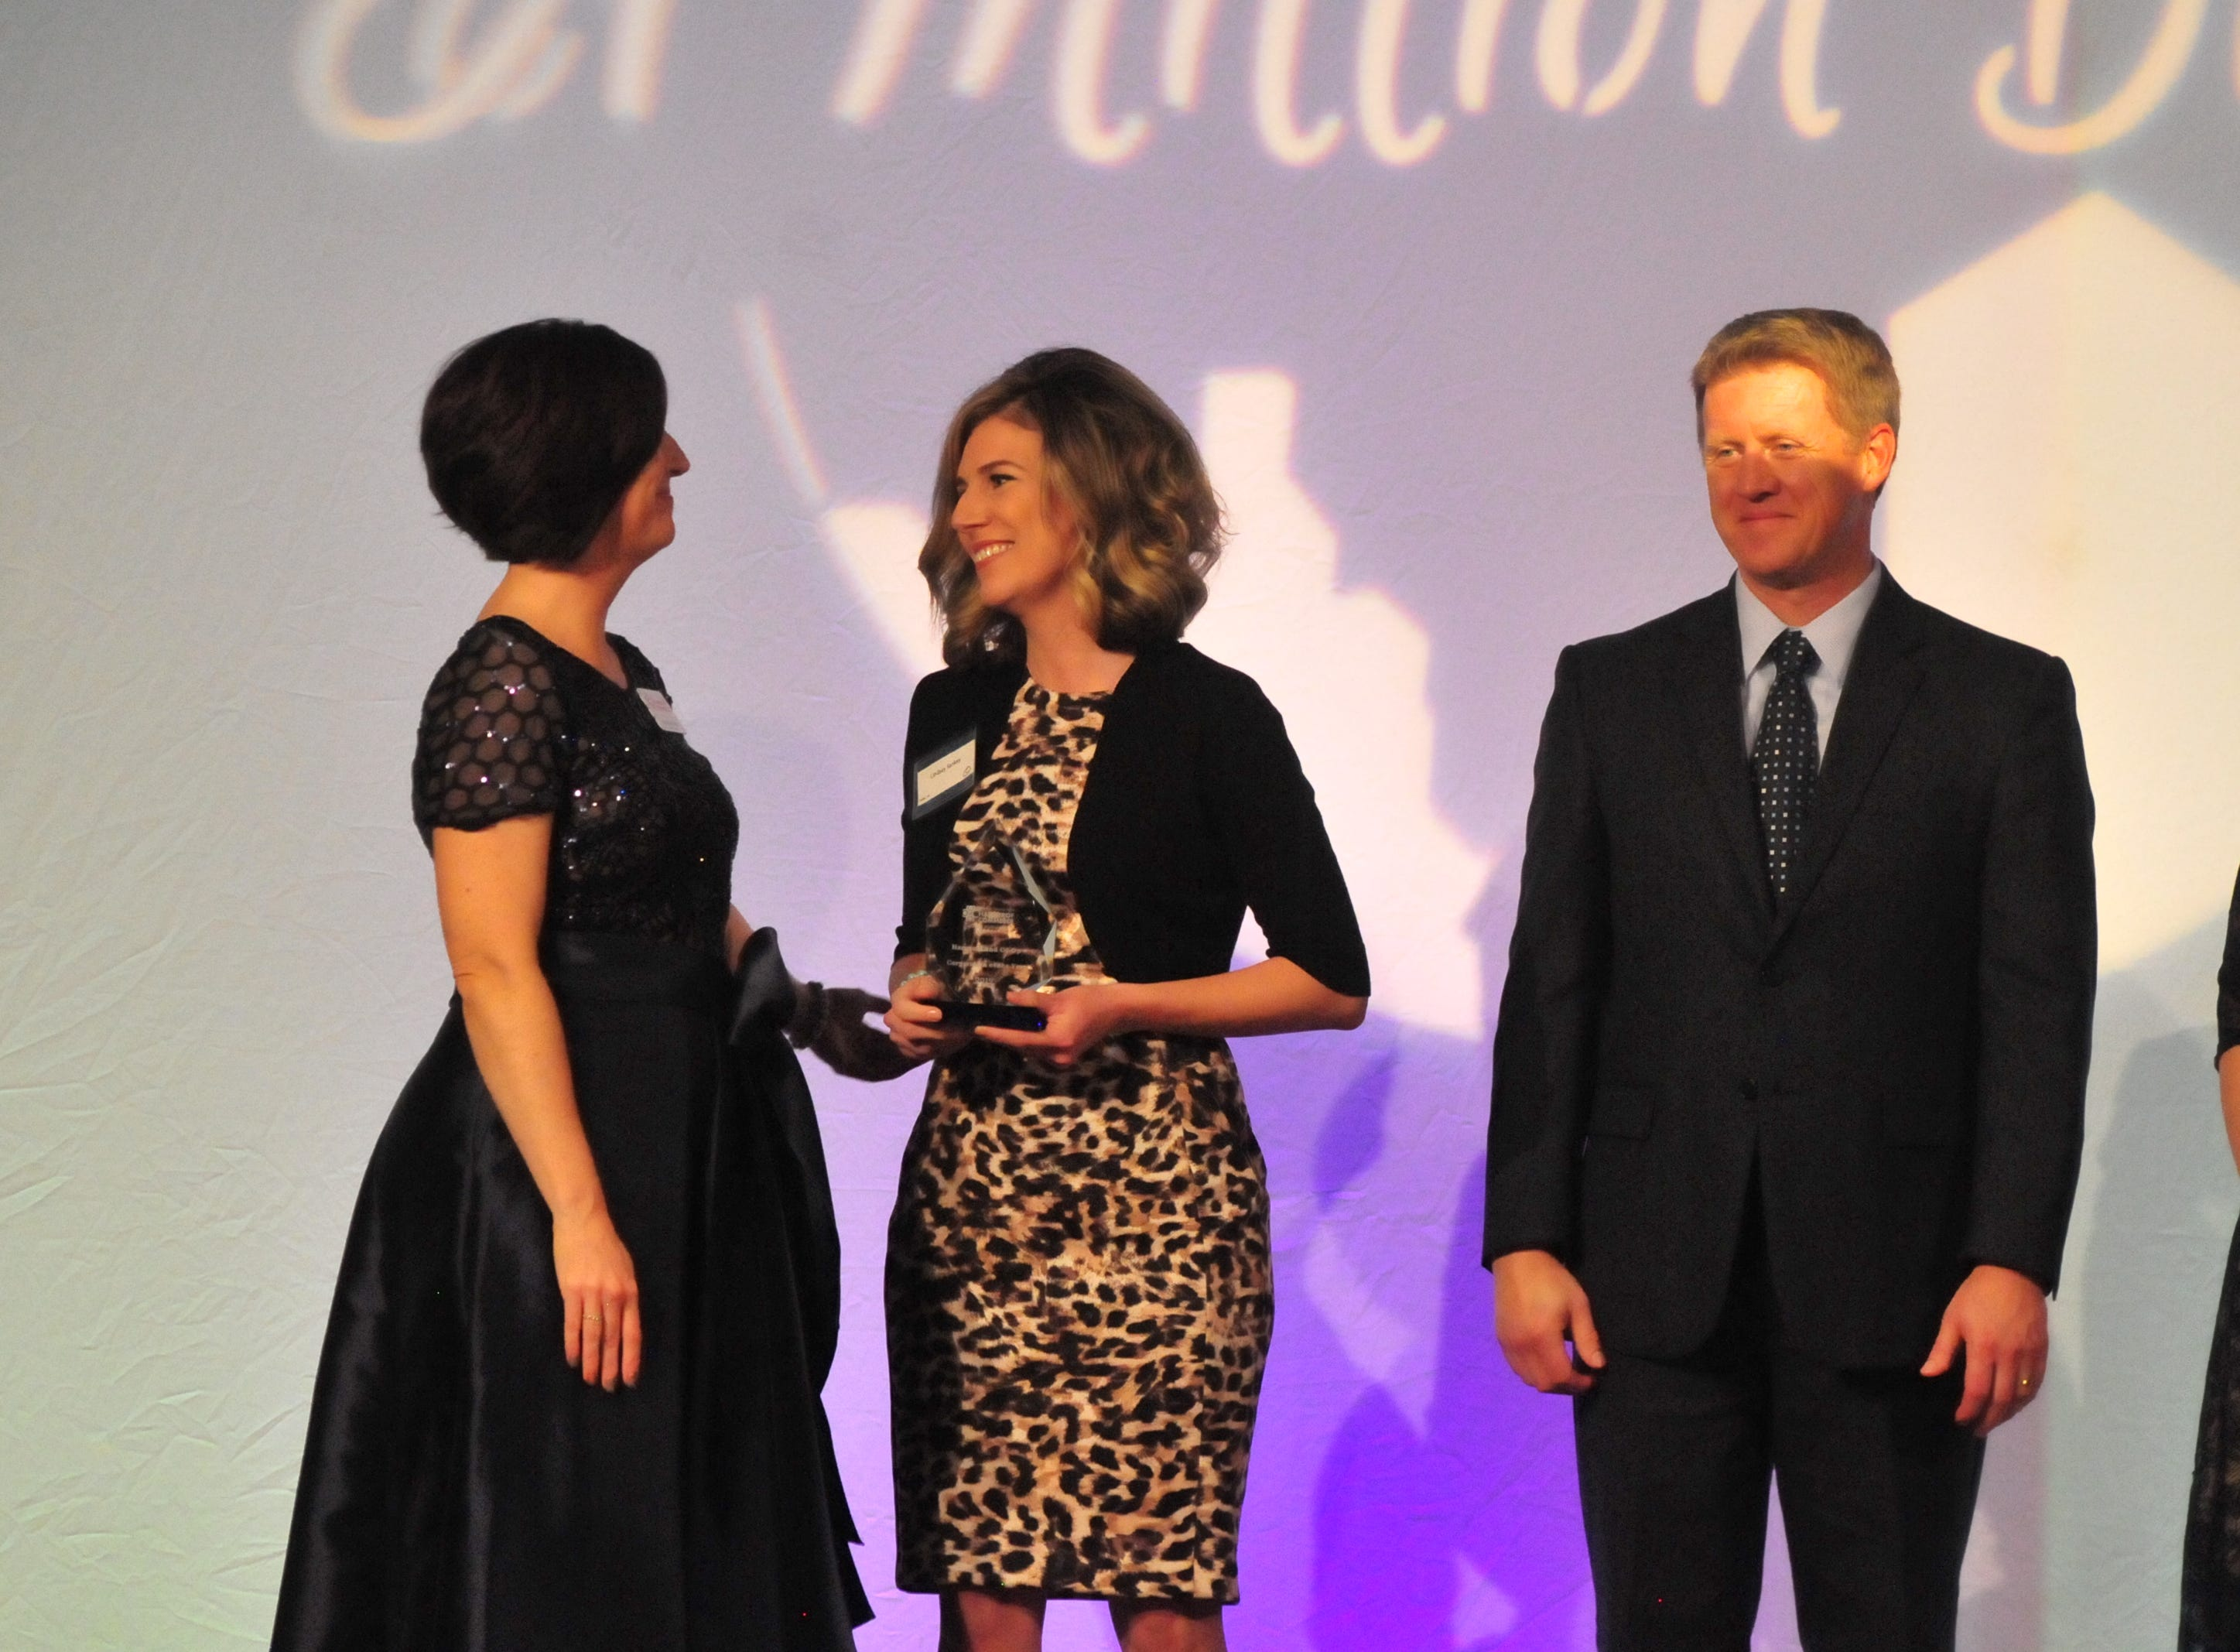 Lindsay Sankey accepts the Corporation of the Year award for Harvest Land Co-op.